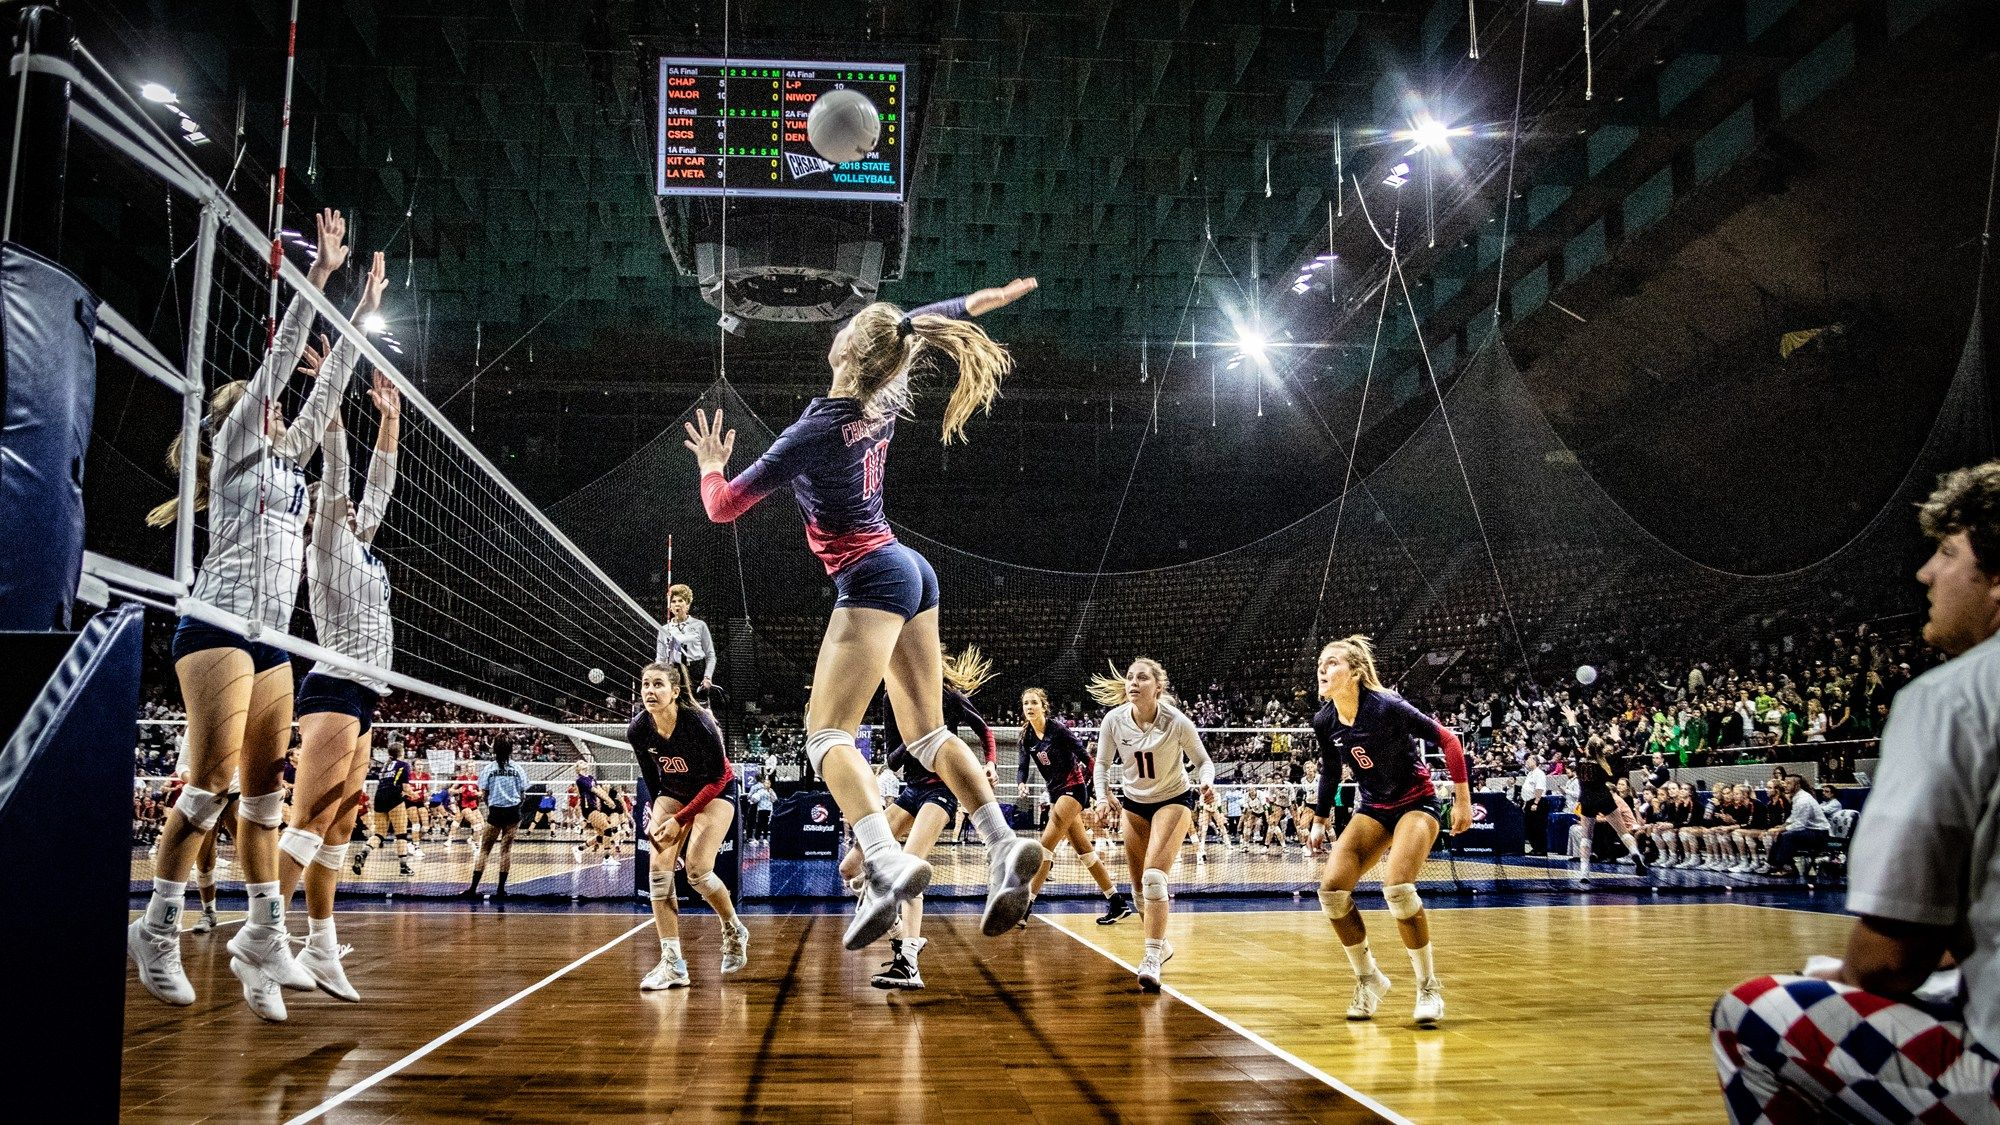 201920 volleyball rules changes impact uniforms prematch